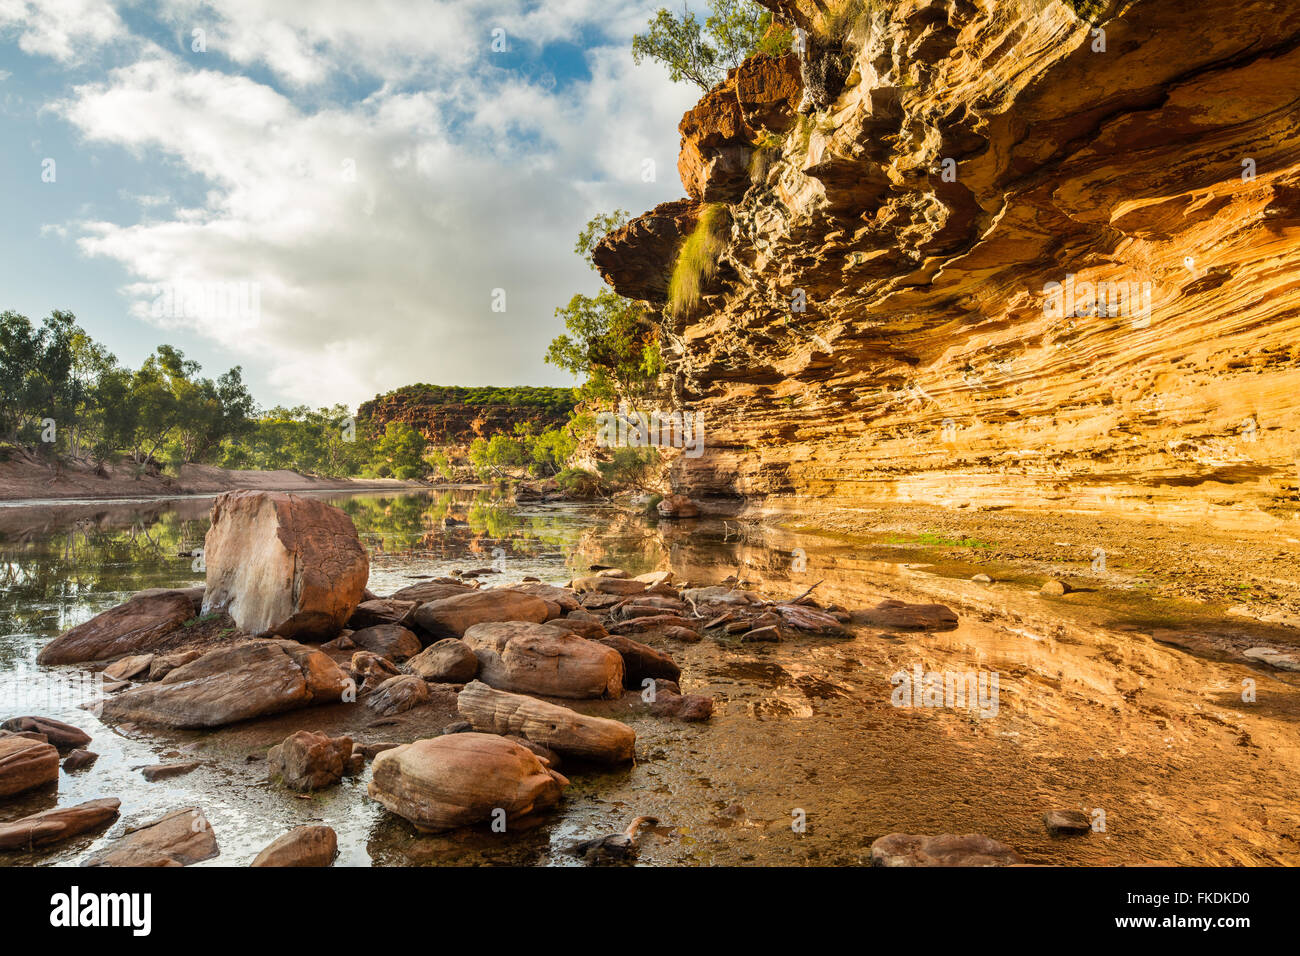 Il Murchison River Gorge a Ross Graham, Kalbarri National Park, Australia occidentale Immagini Stock